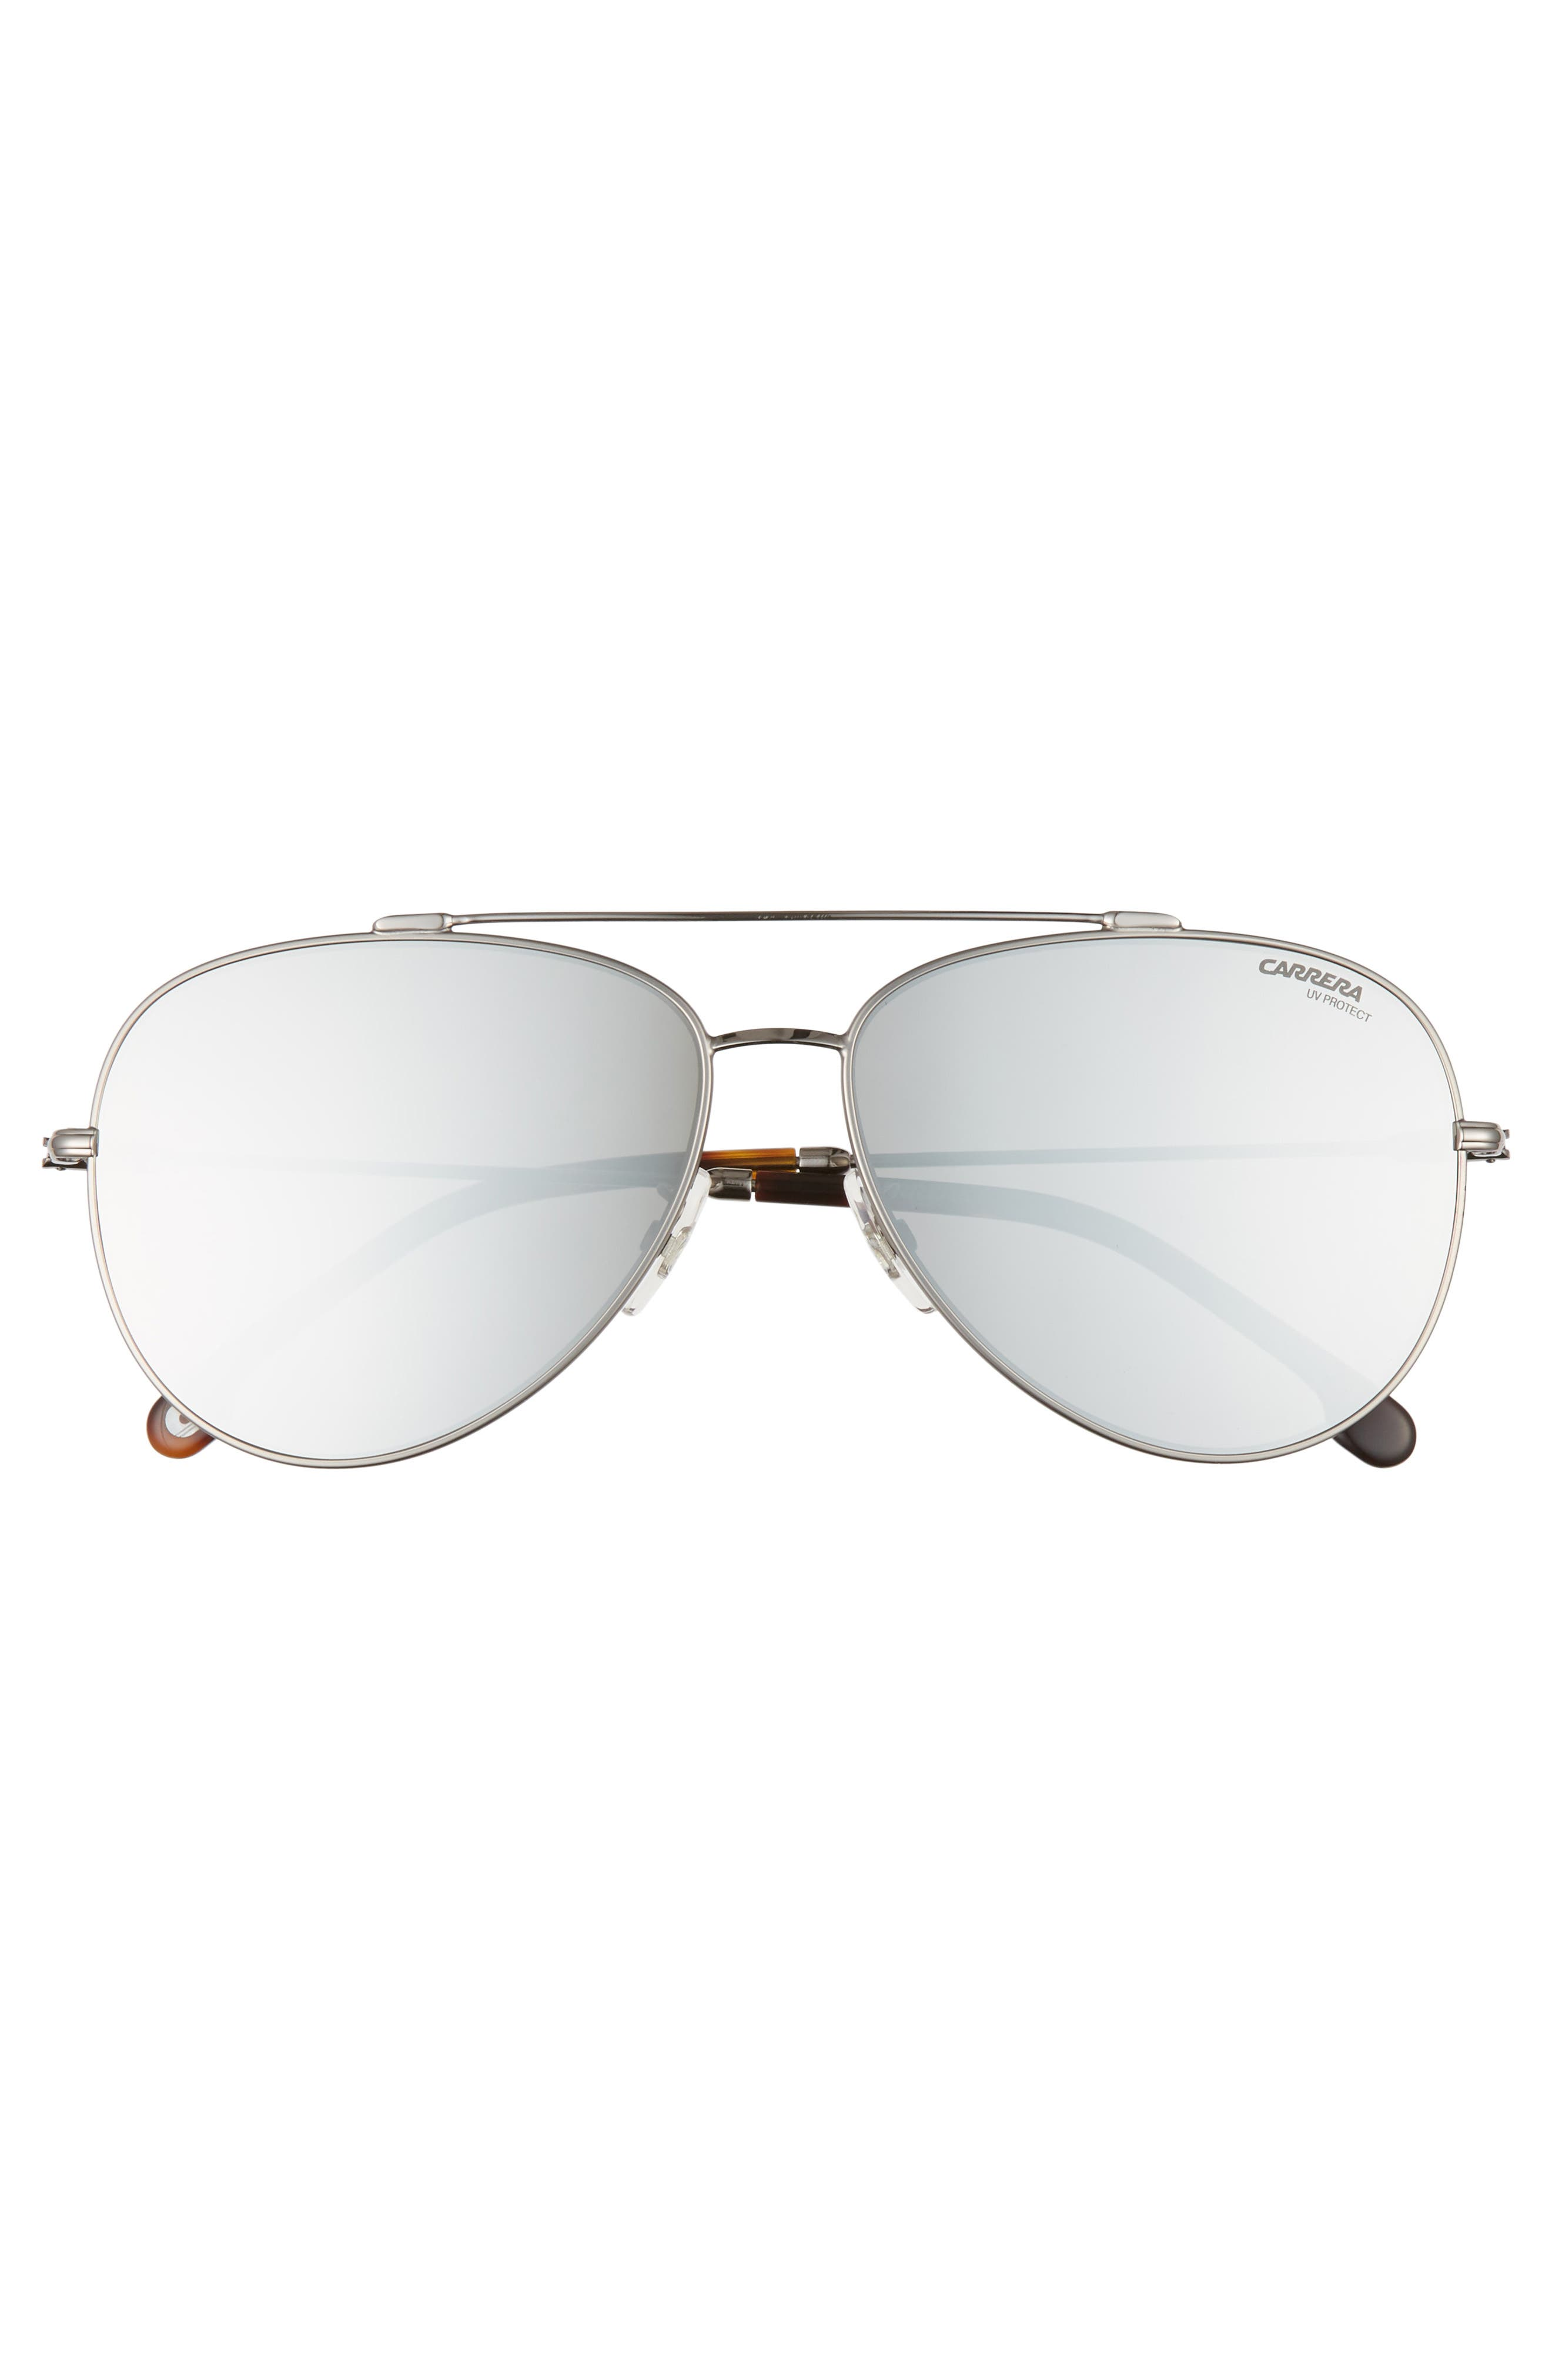 62mm Aviator Sunglasses,                             Alternate thumbnail 2, color,                             RUTHENIUM